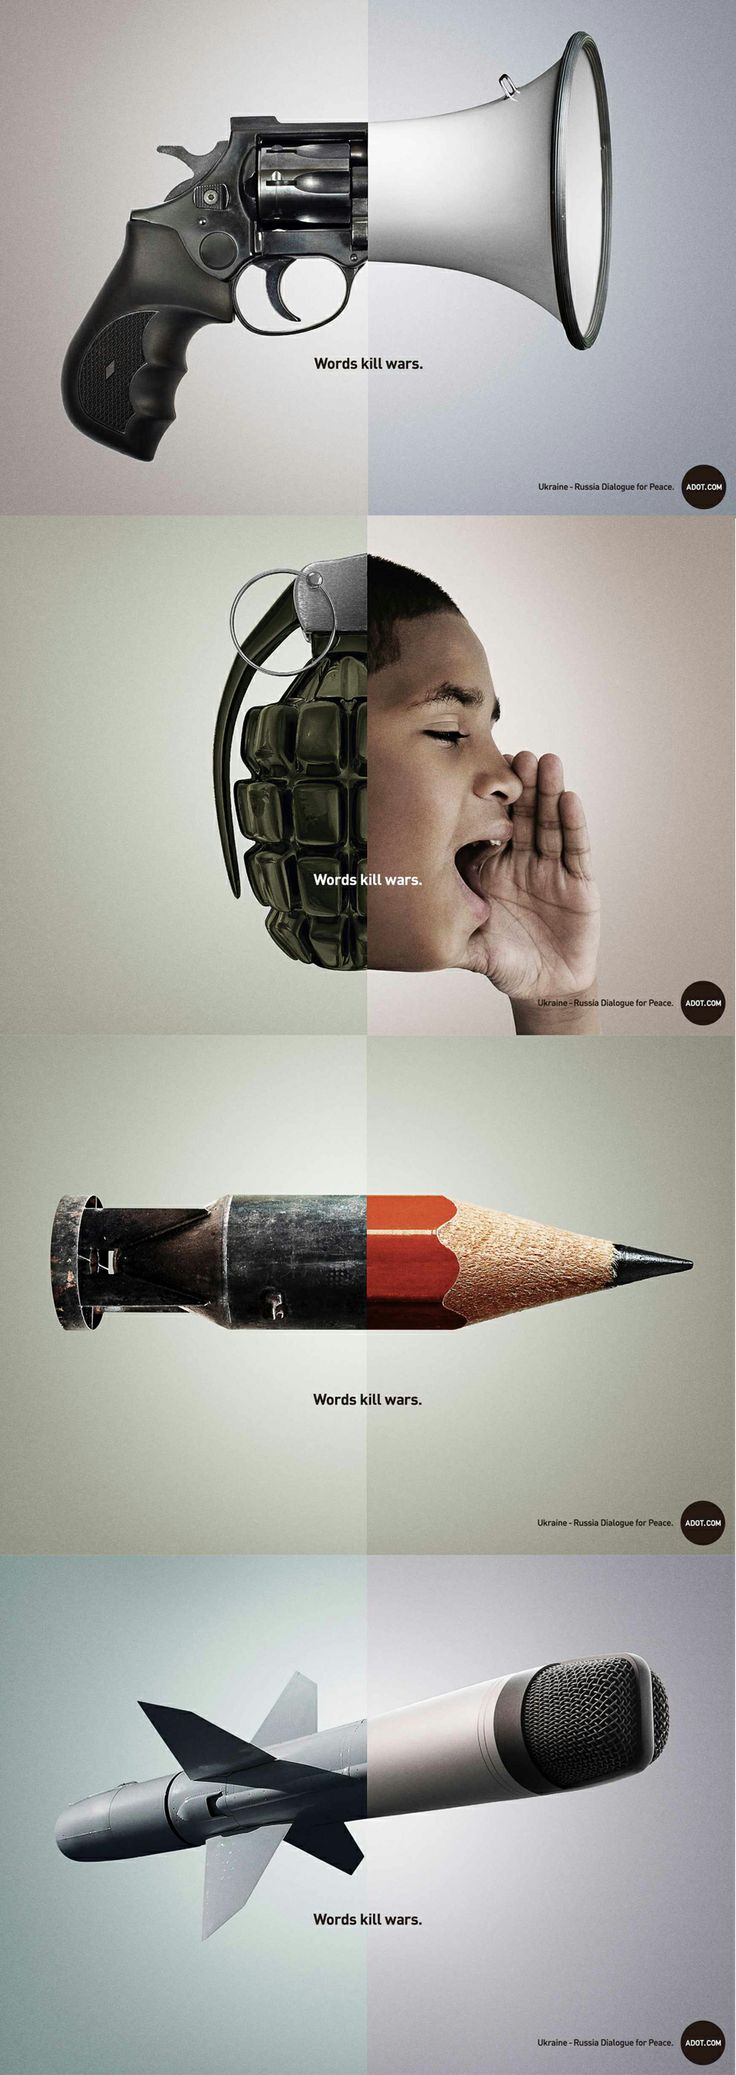 17 best images about creative advertising marketing words kill wars adot com ogilvy